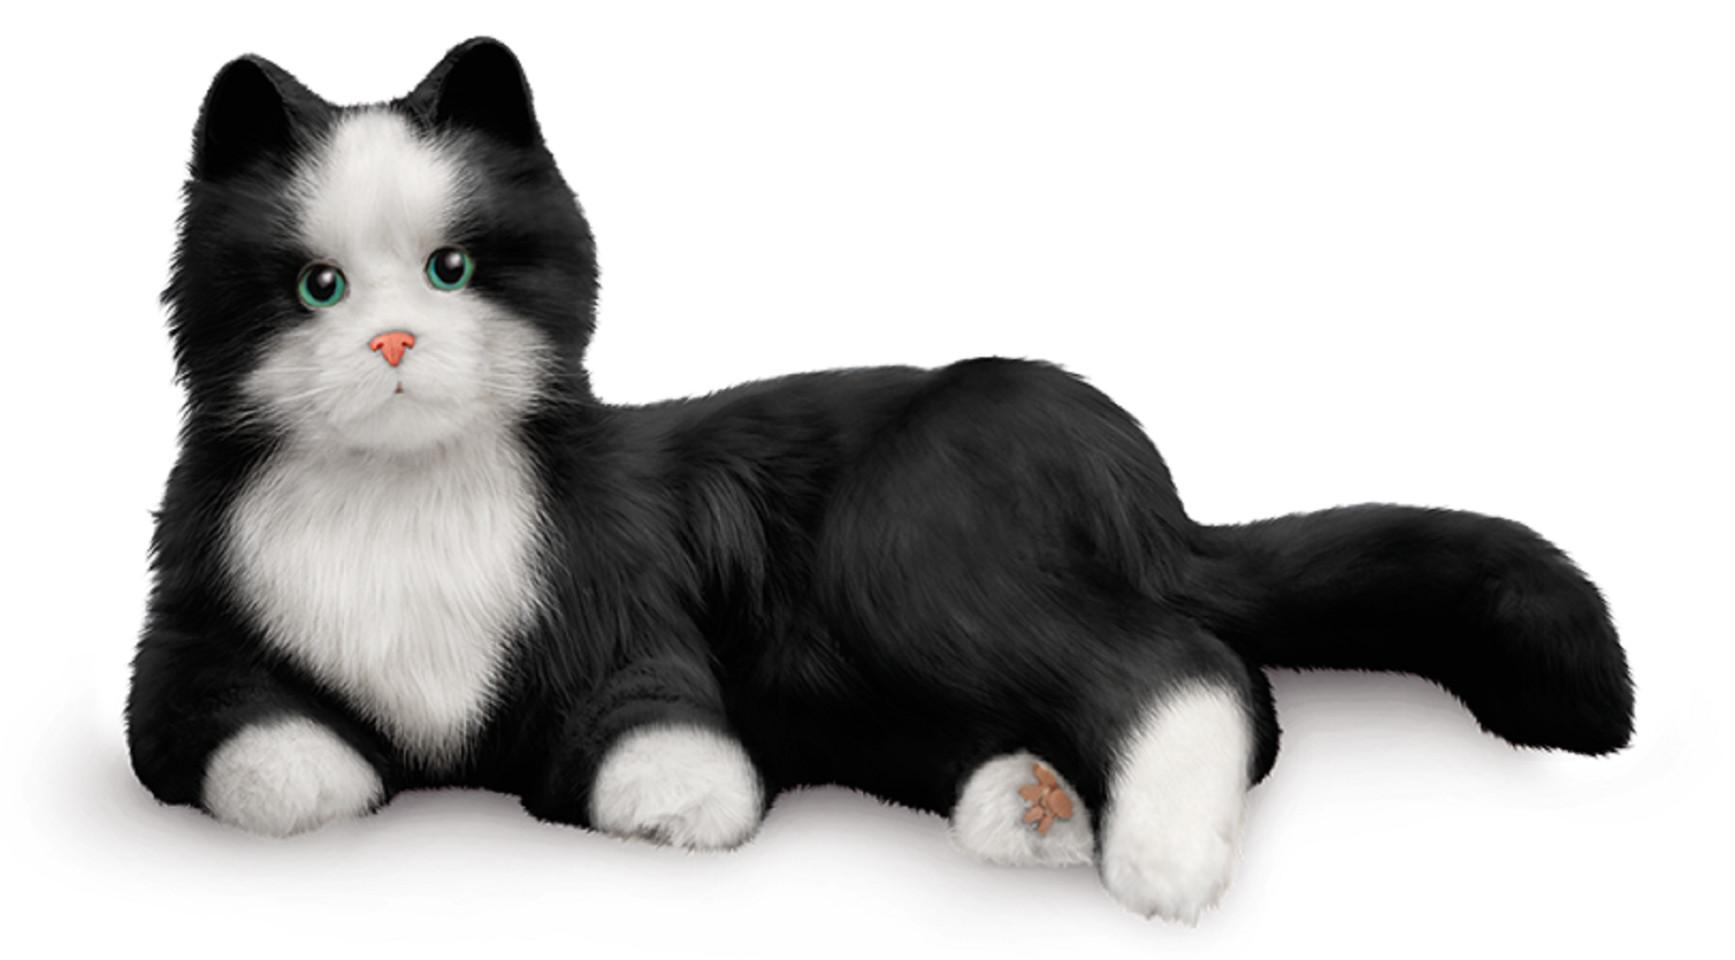 Black and White Companion Cat - Joy for All